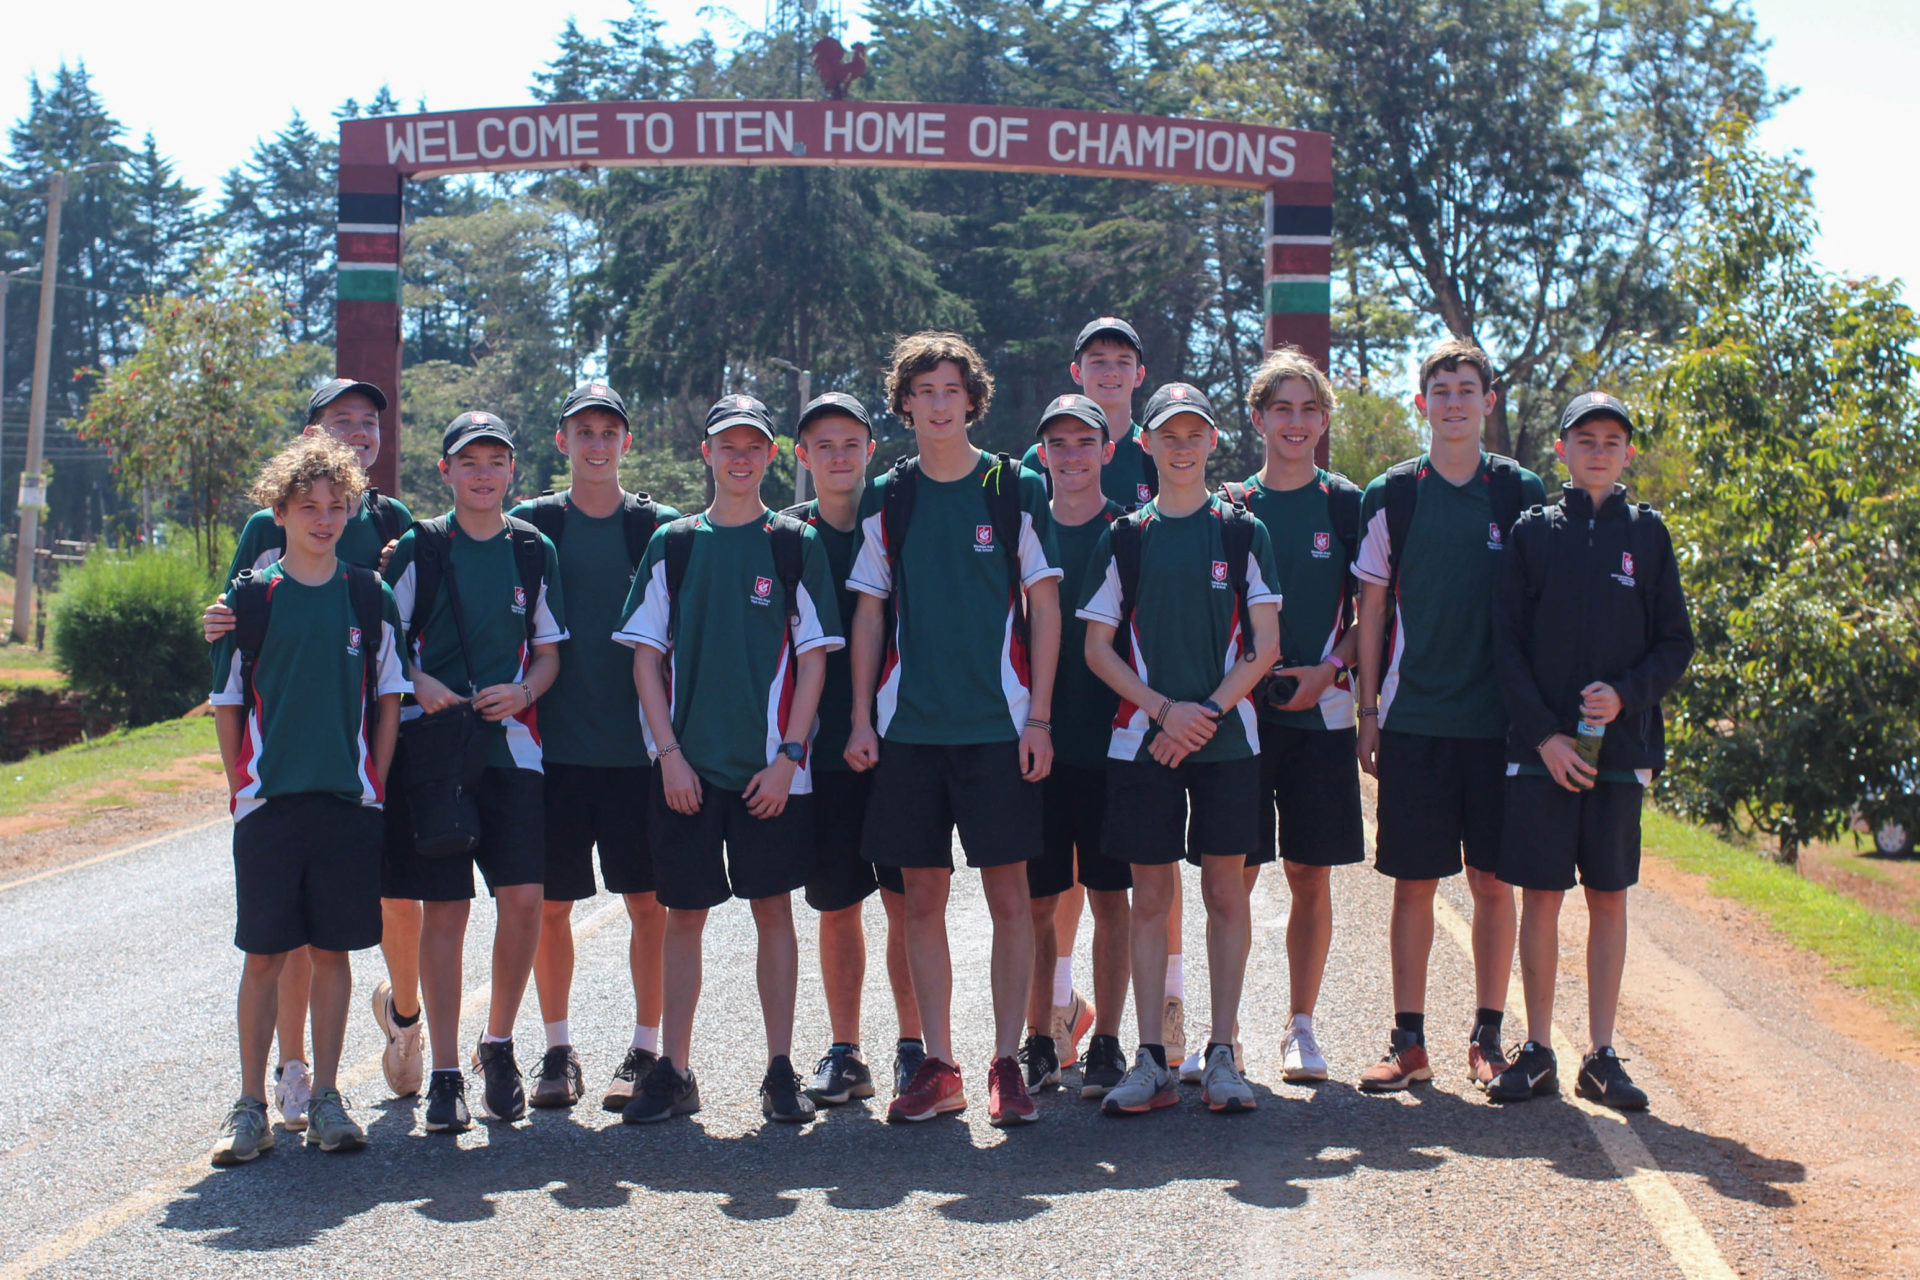 Westlake Boys School Runners with Iten Arch